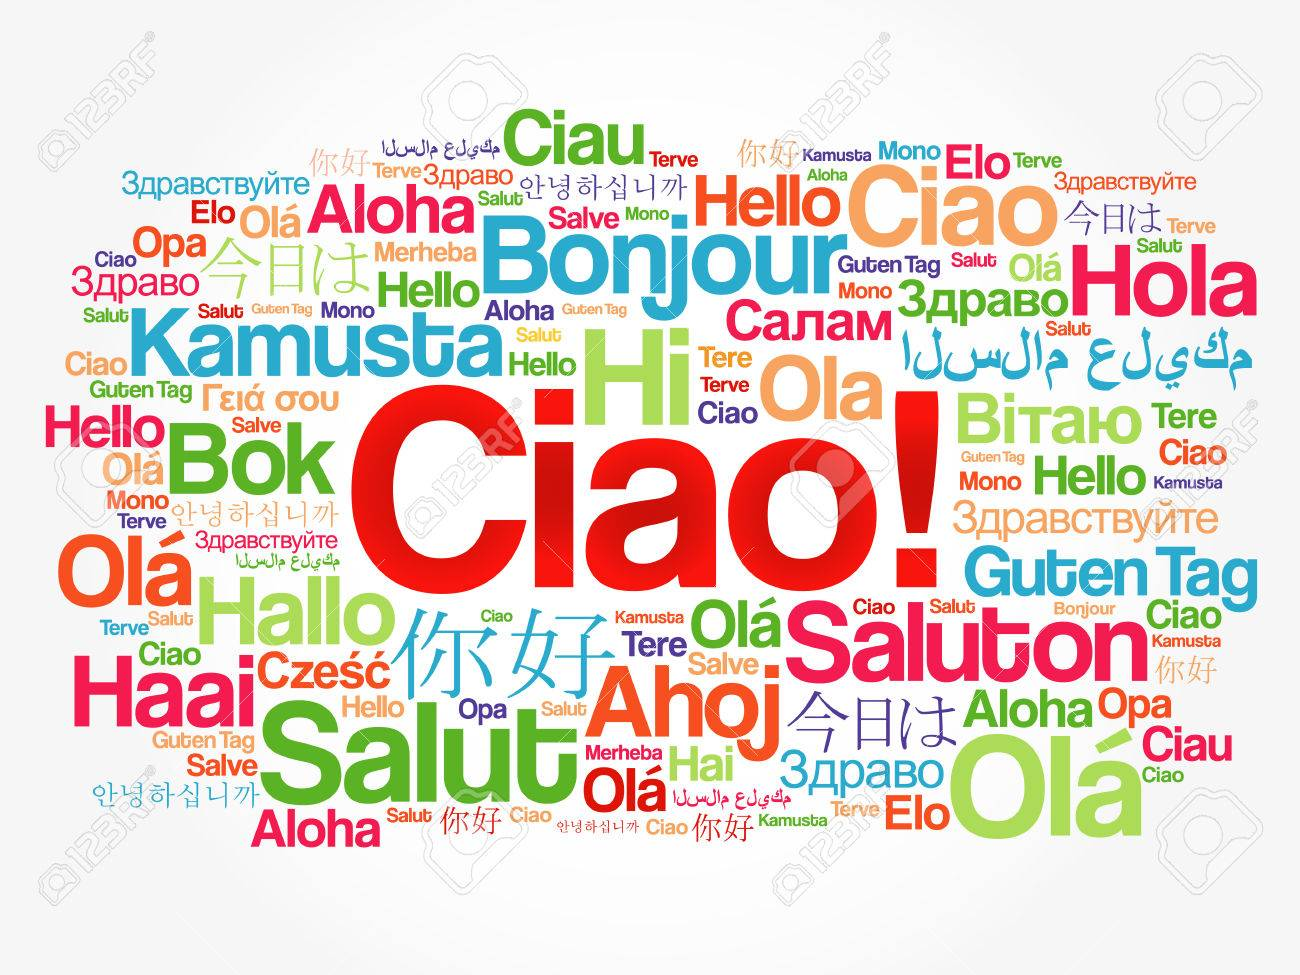 Ciao hello greeting in italian word cloud in different languages ciao hello greeting in italian word cloud in different languages of the world kristyandbryce Image collections